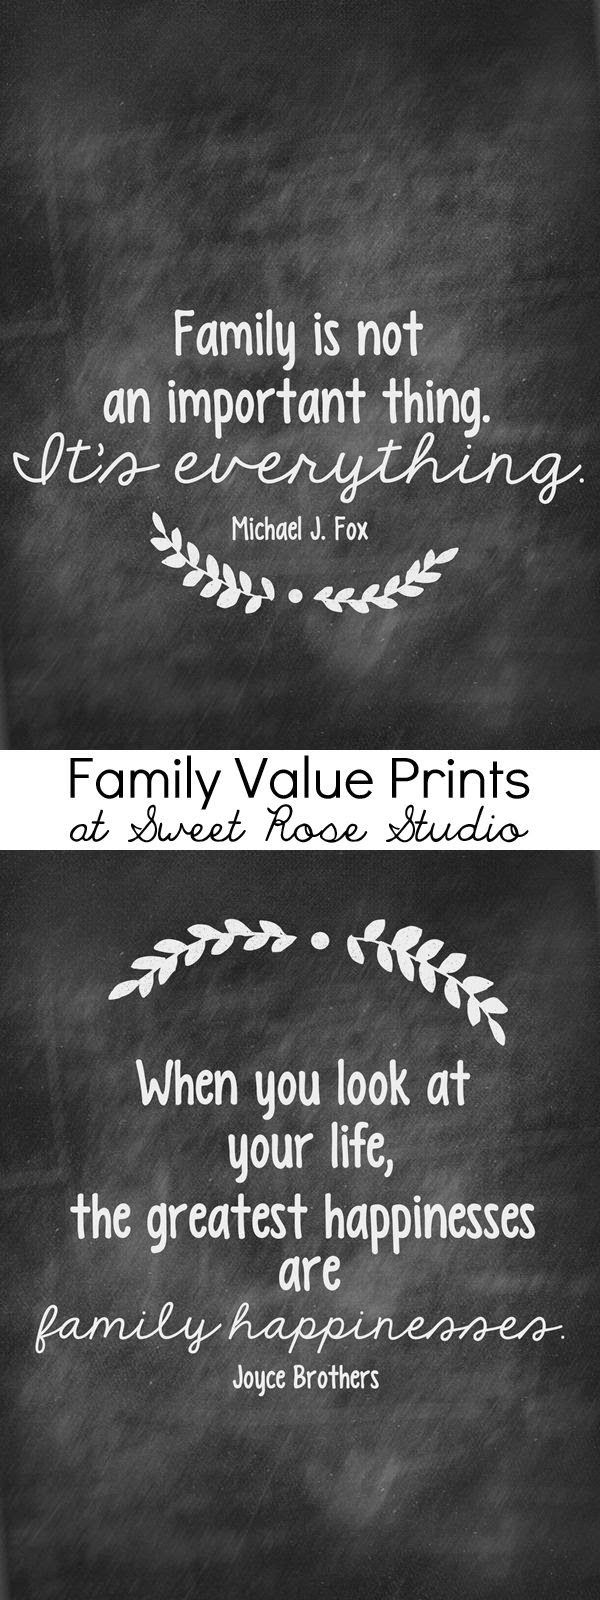 Family Love Life Quotes And Status Whatsapp Status Value Quotes Family Quotes Daughter Love Quotes